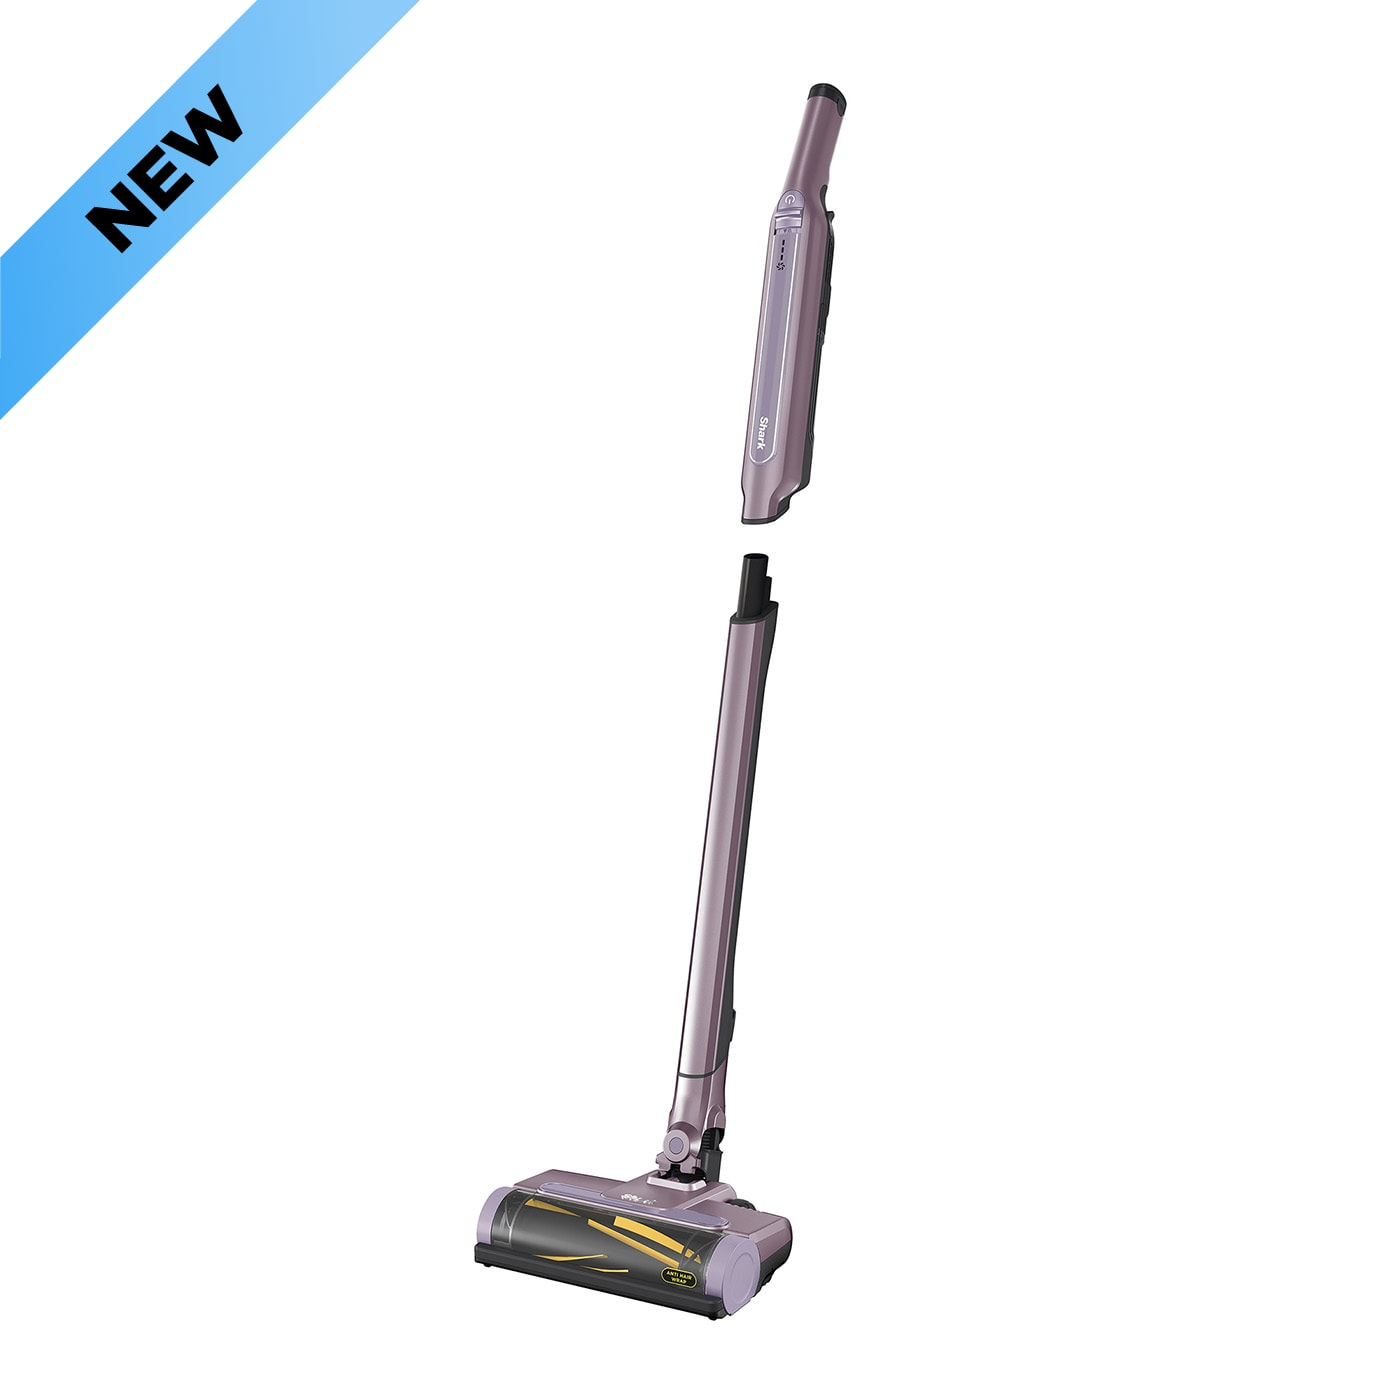 Shark WandVac System 2-in-1 Cordless Vacuum Cleaner with Anti Hair Wrap [Single Battery] WV361PLUK – Purple product photo